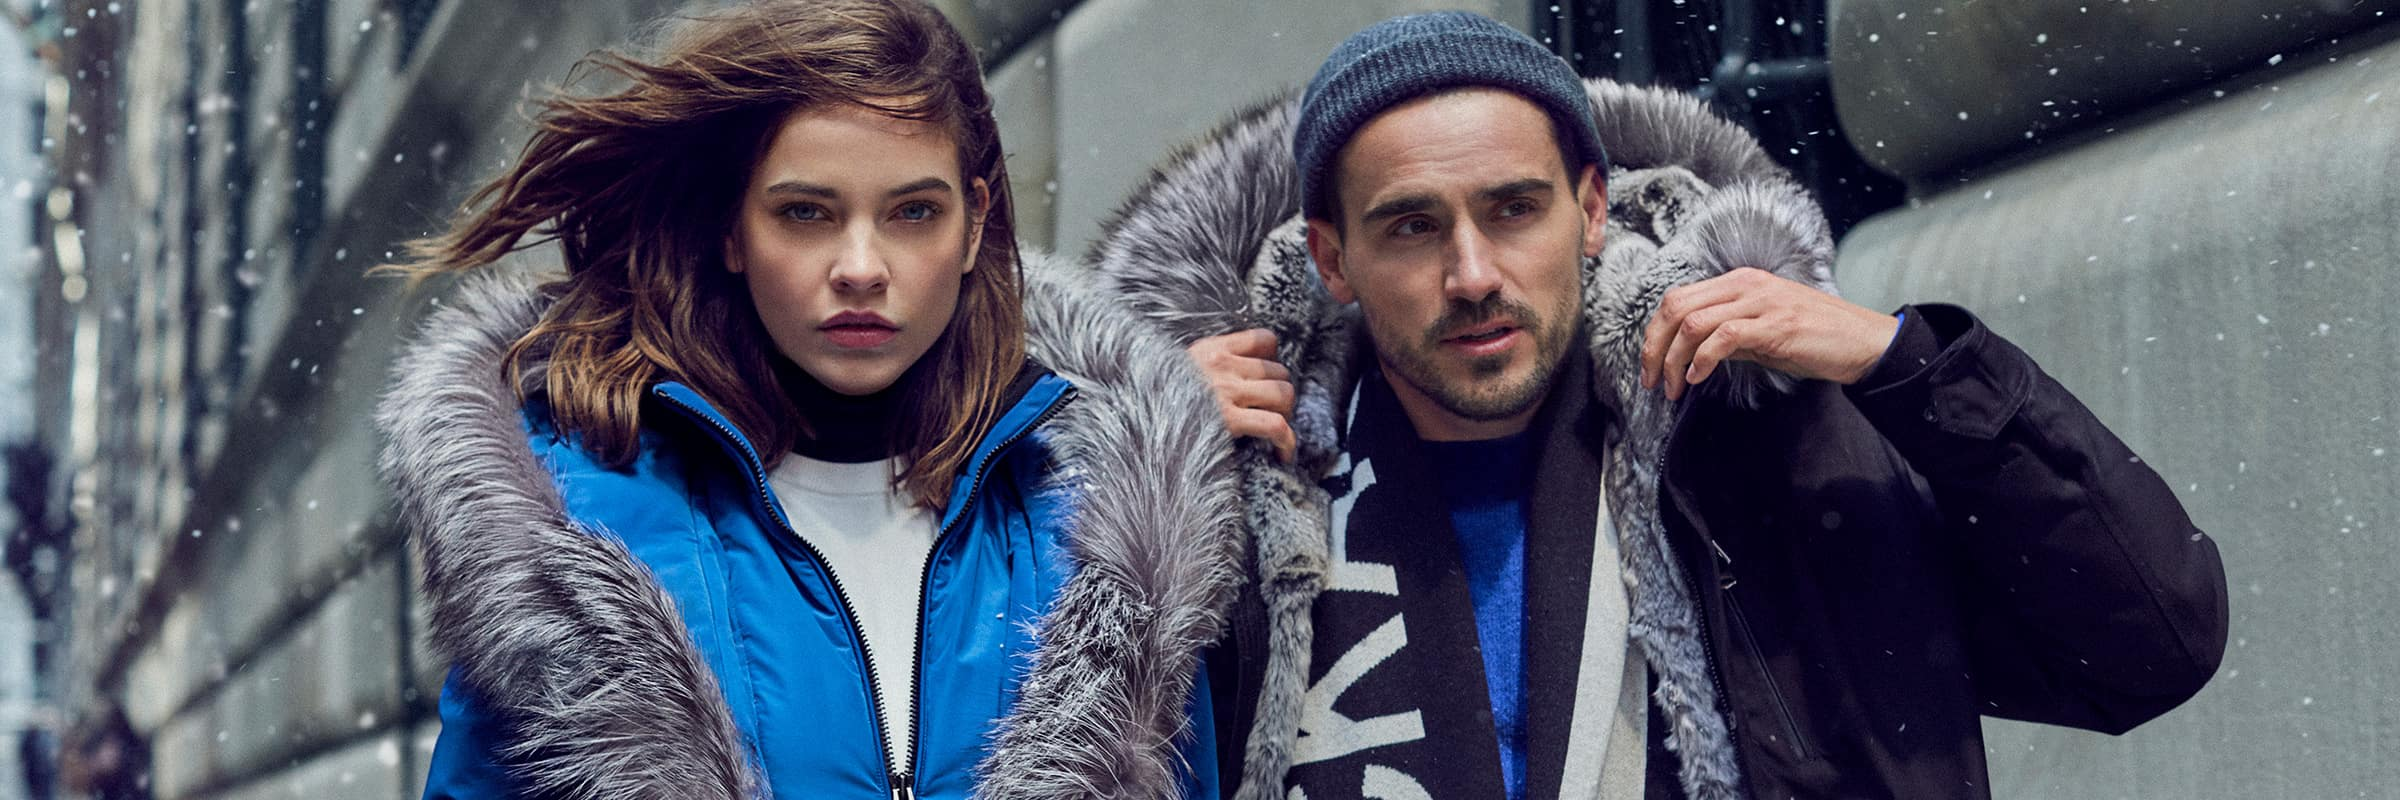 Mackage Coats for Winter Warmth